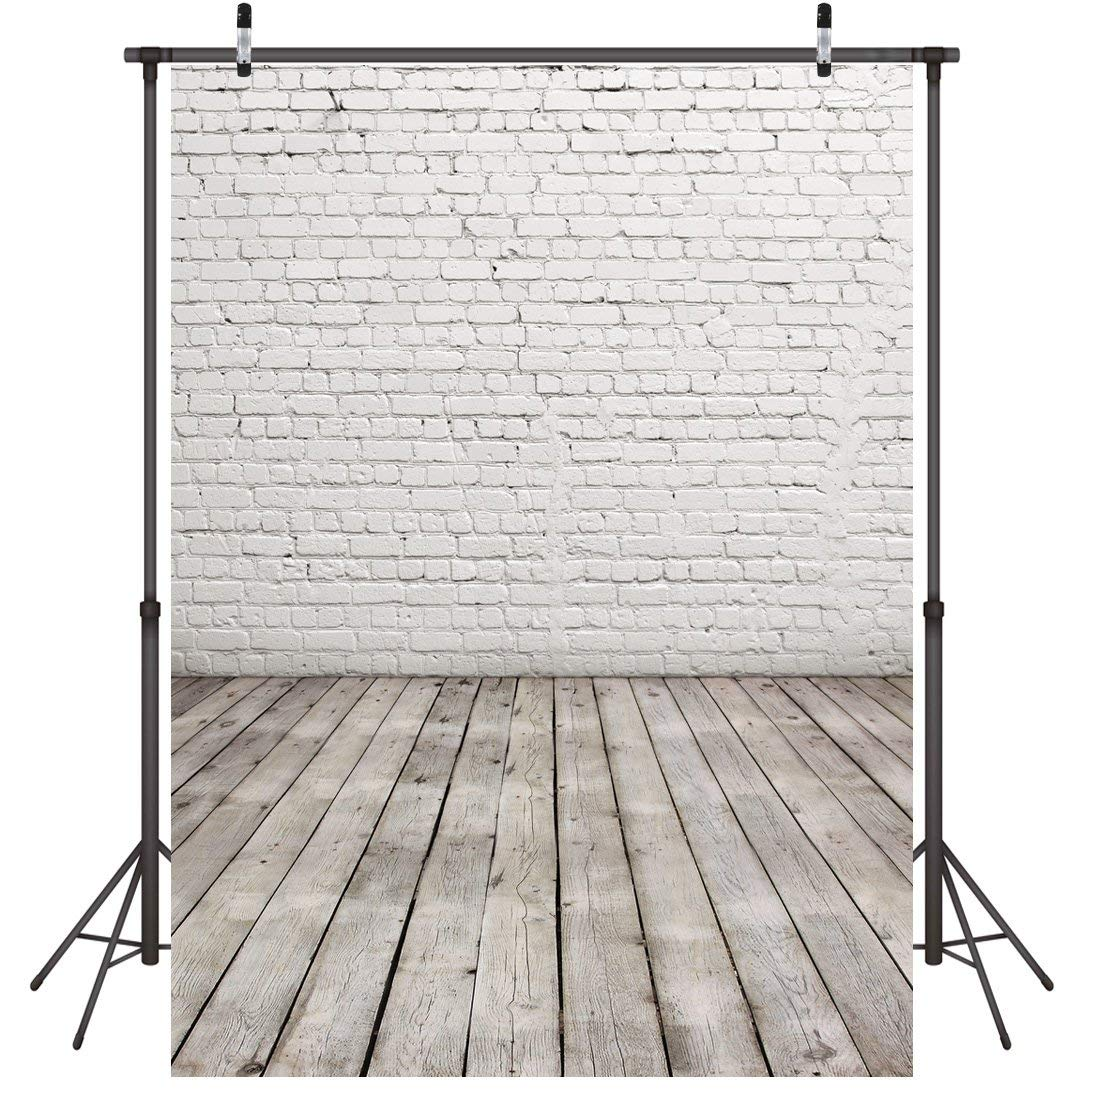 LYWYGG 5x7ft Vinyl Brick Wall Wood floor Photography Backdrops Nostalgia Photography Backdrop for Holiday Party, Baby Shower, Wall Decoration, Photography, Video Backdrops CP-11